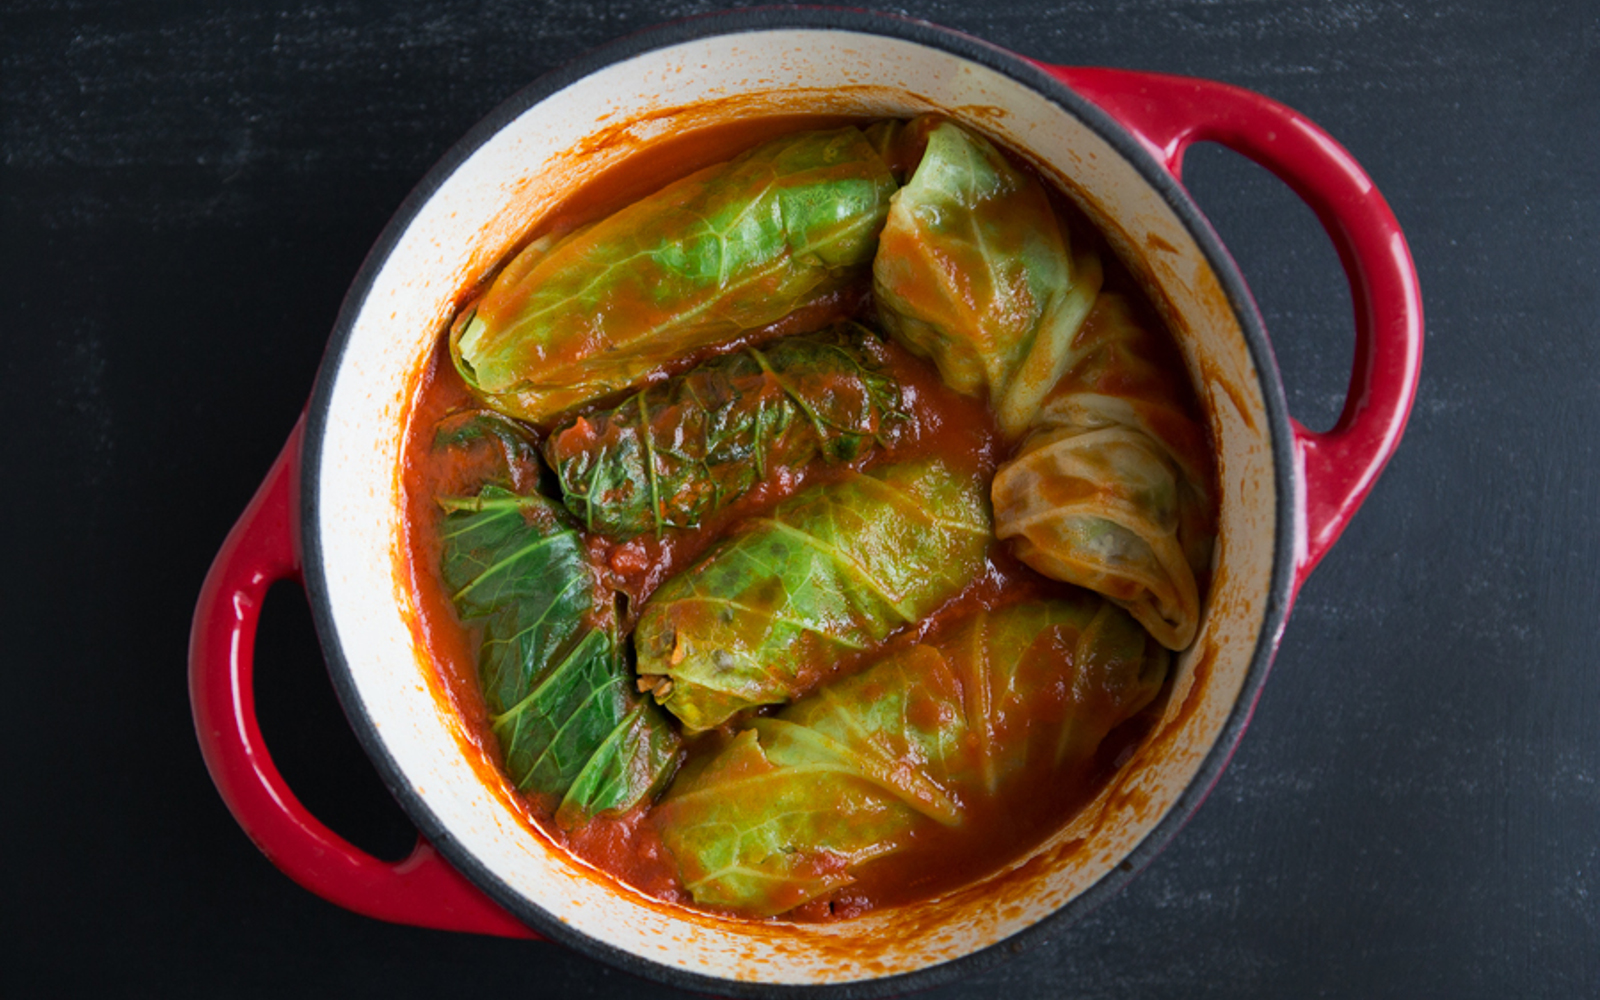 Vegan Lentil Stuffed Cabbage Rolls